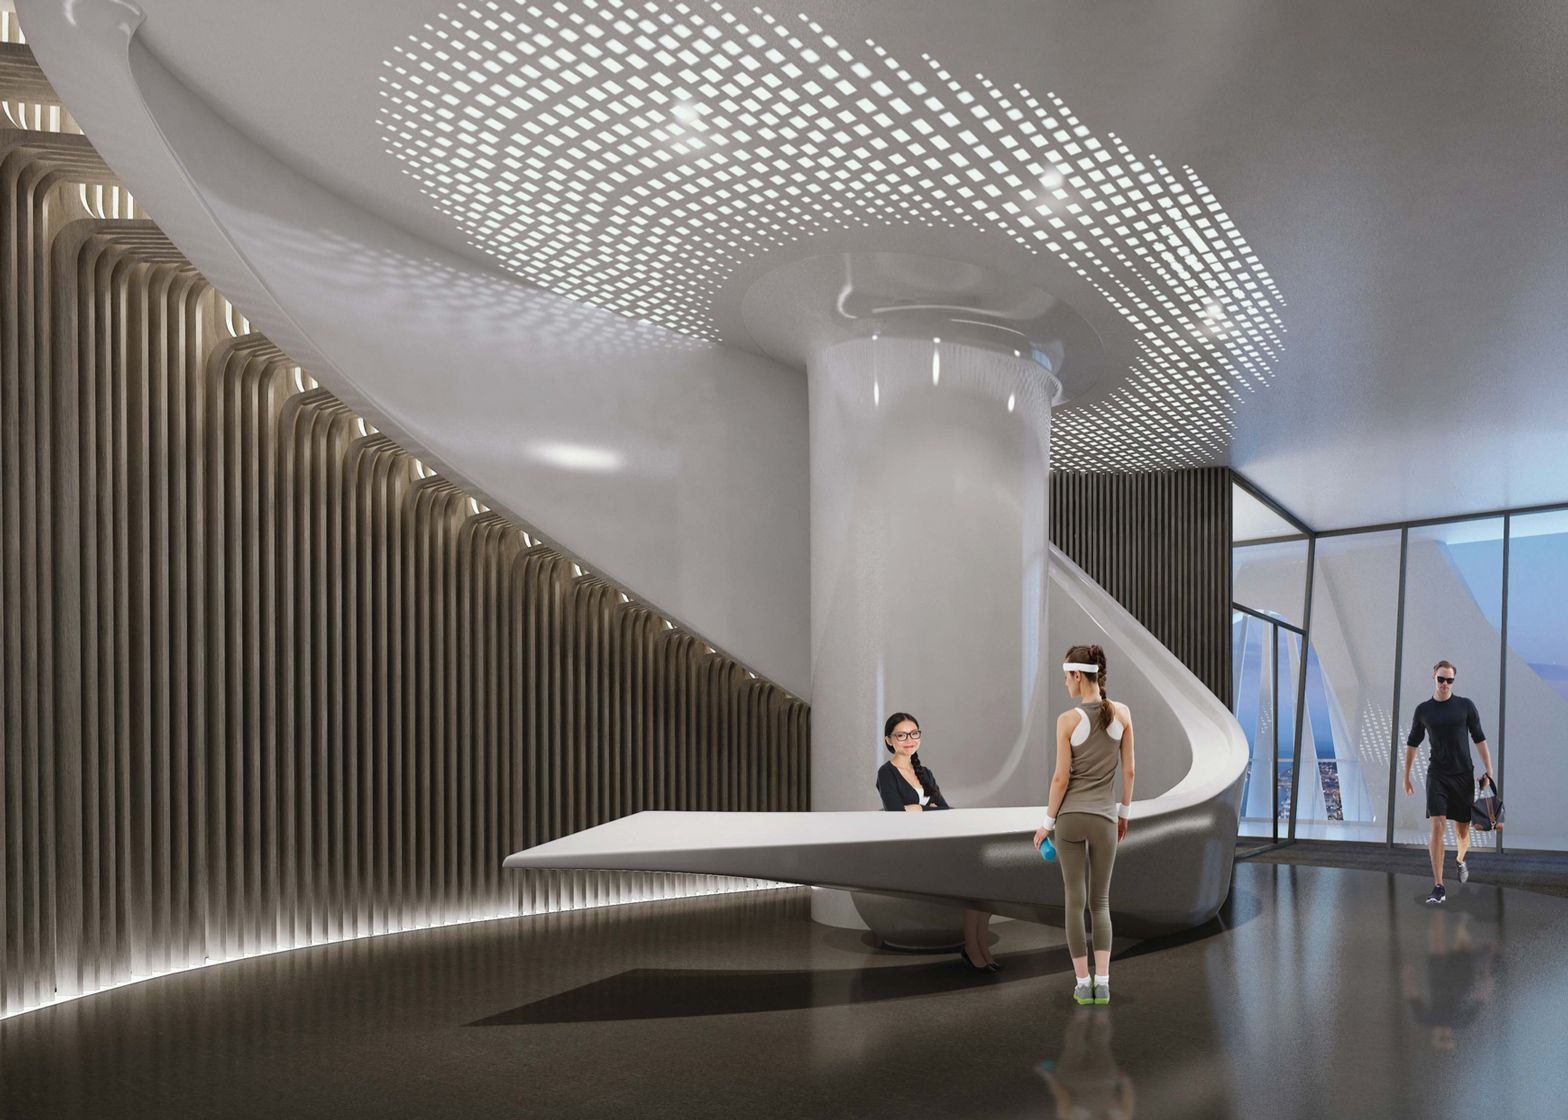 Zaha hadid 39 s interiors for one thousand museum in miami for Construction architect